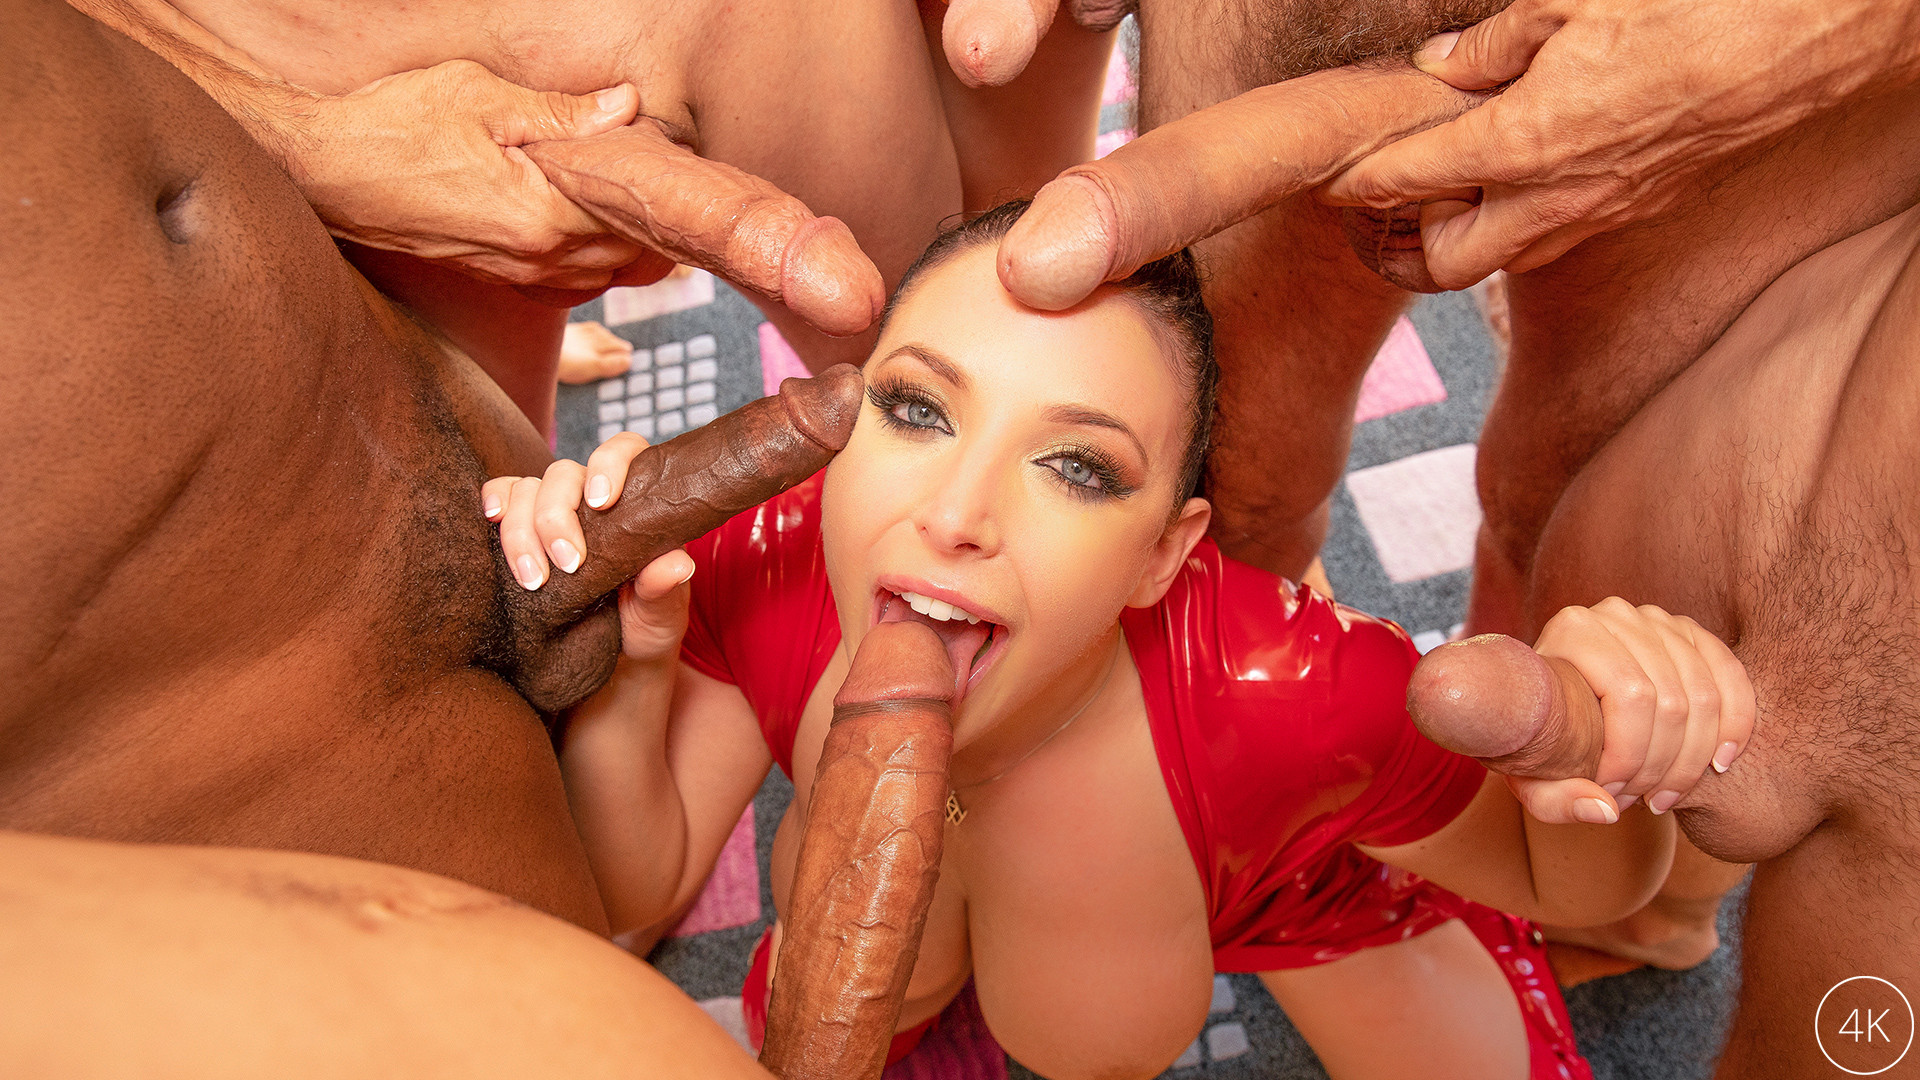 JulesJordan.com - Swarmed By 13 Guys Angela White Does Her Biggest Blowbang Ever